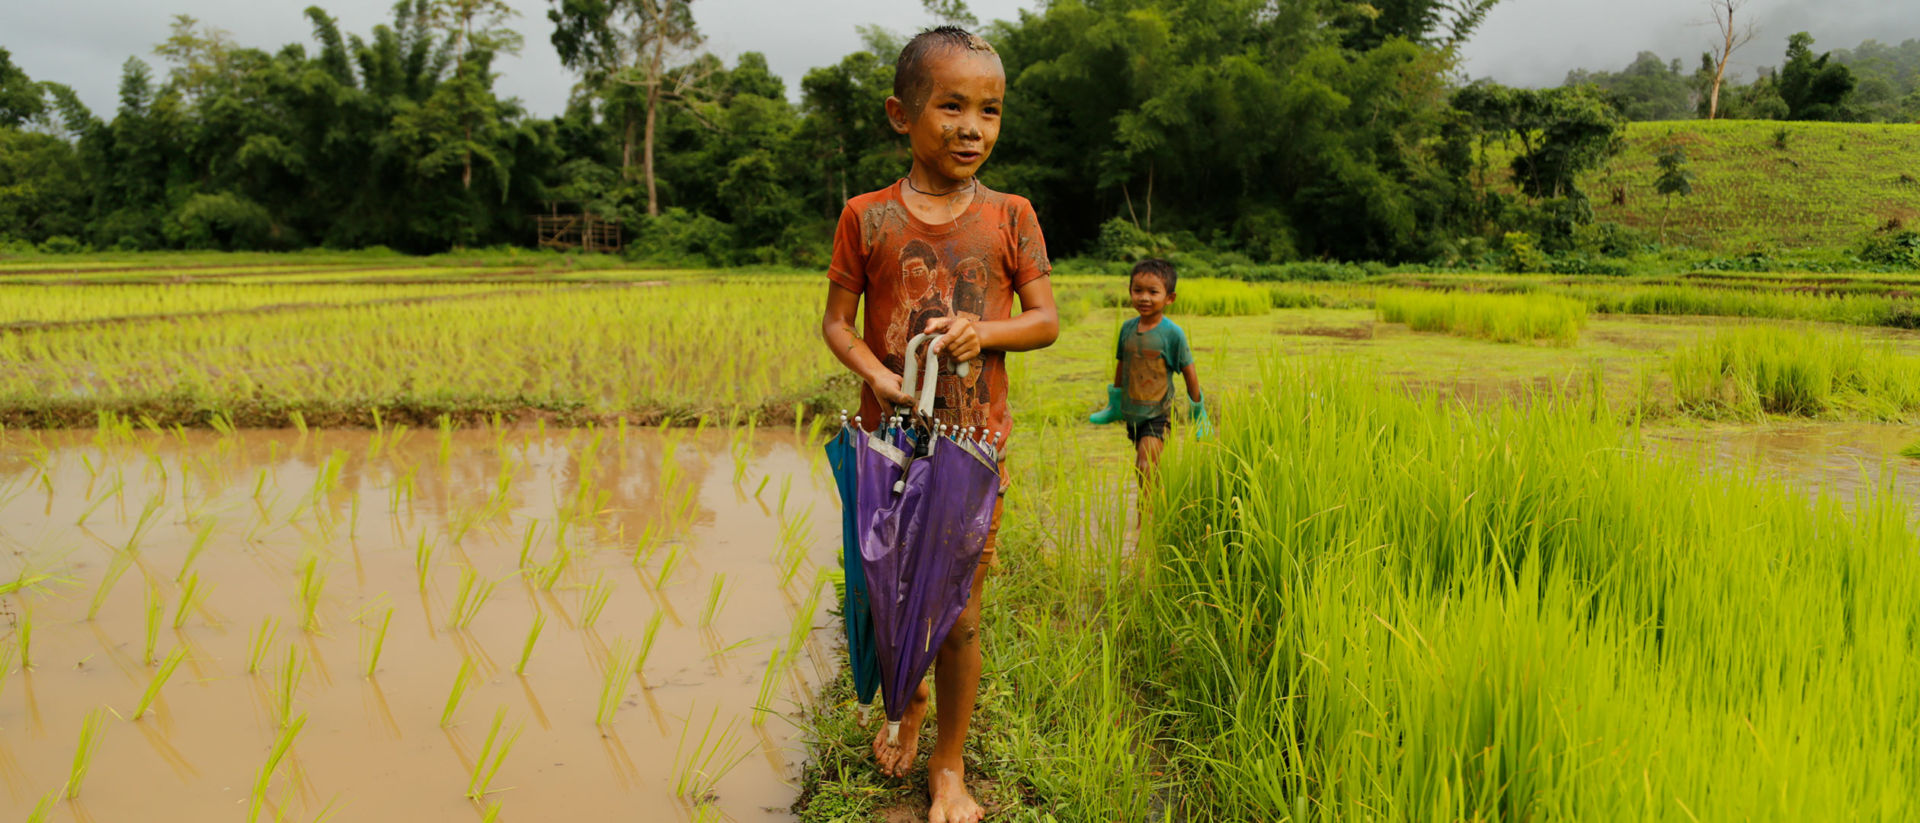 Rice fields are muddy places — even more so during rainy season, when the only road into Kotah becomes a quagmire.